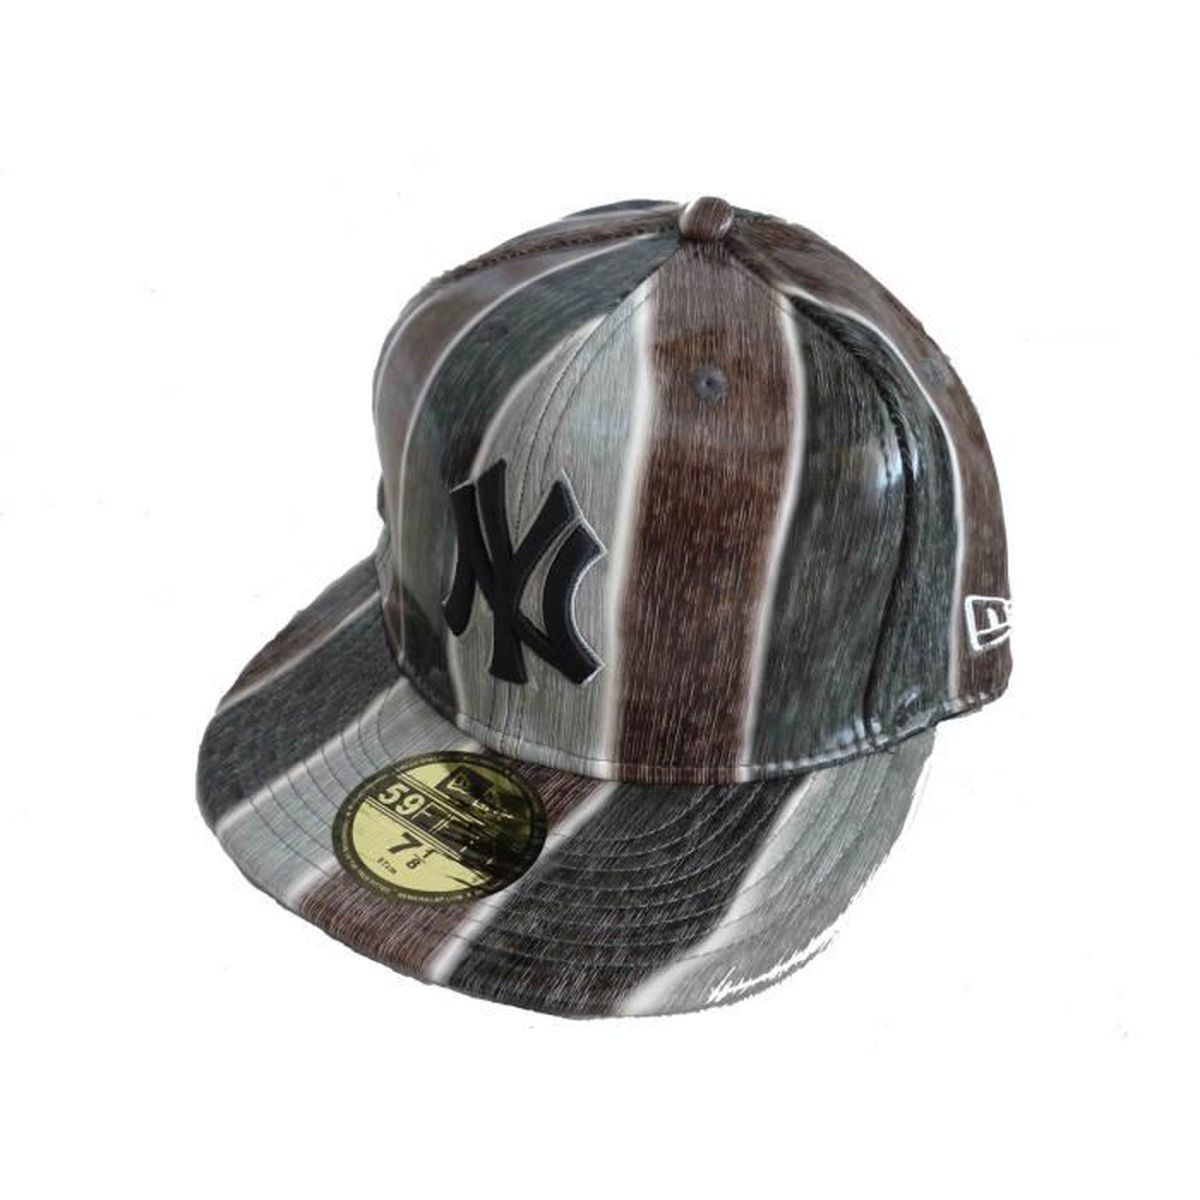 CASQUETTE NEW ERA   59 FIFTY   NEW YORK TAILLE 7 1 8 57cm - Achat ... e41f625a43d1